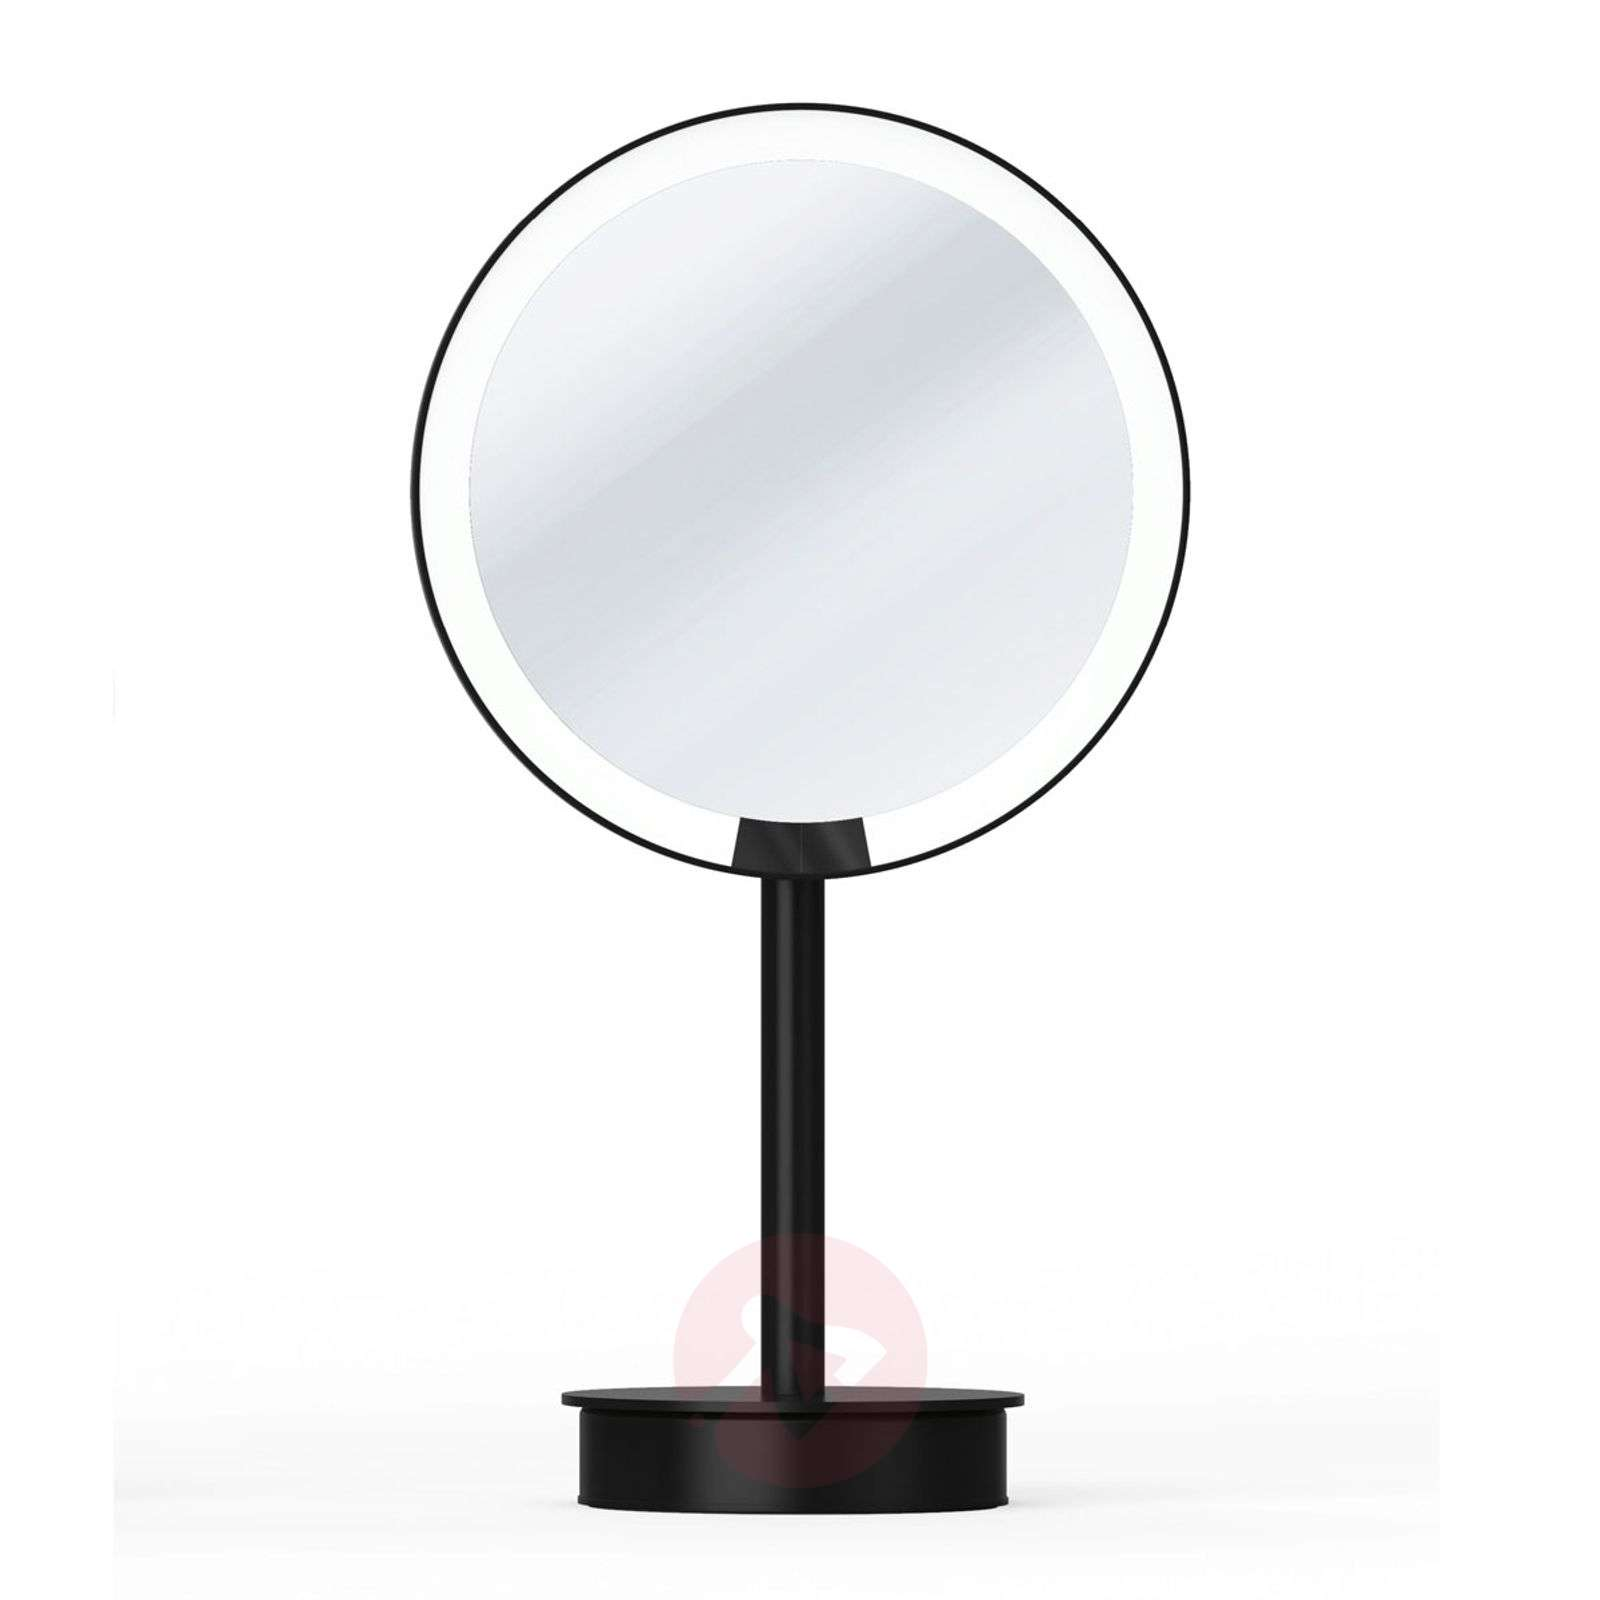 Decor Walther Just Look SR table mirror-2504966X-01